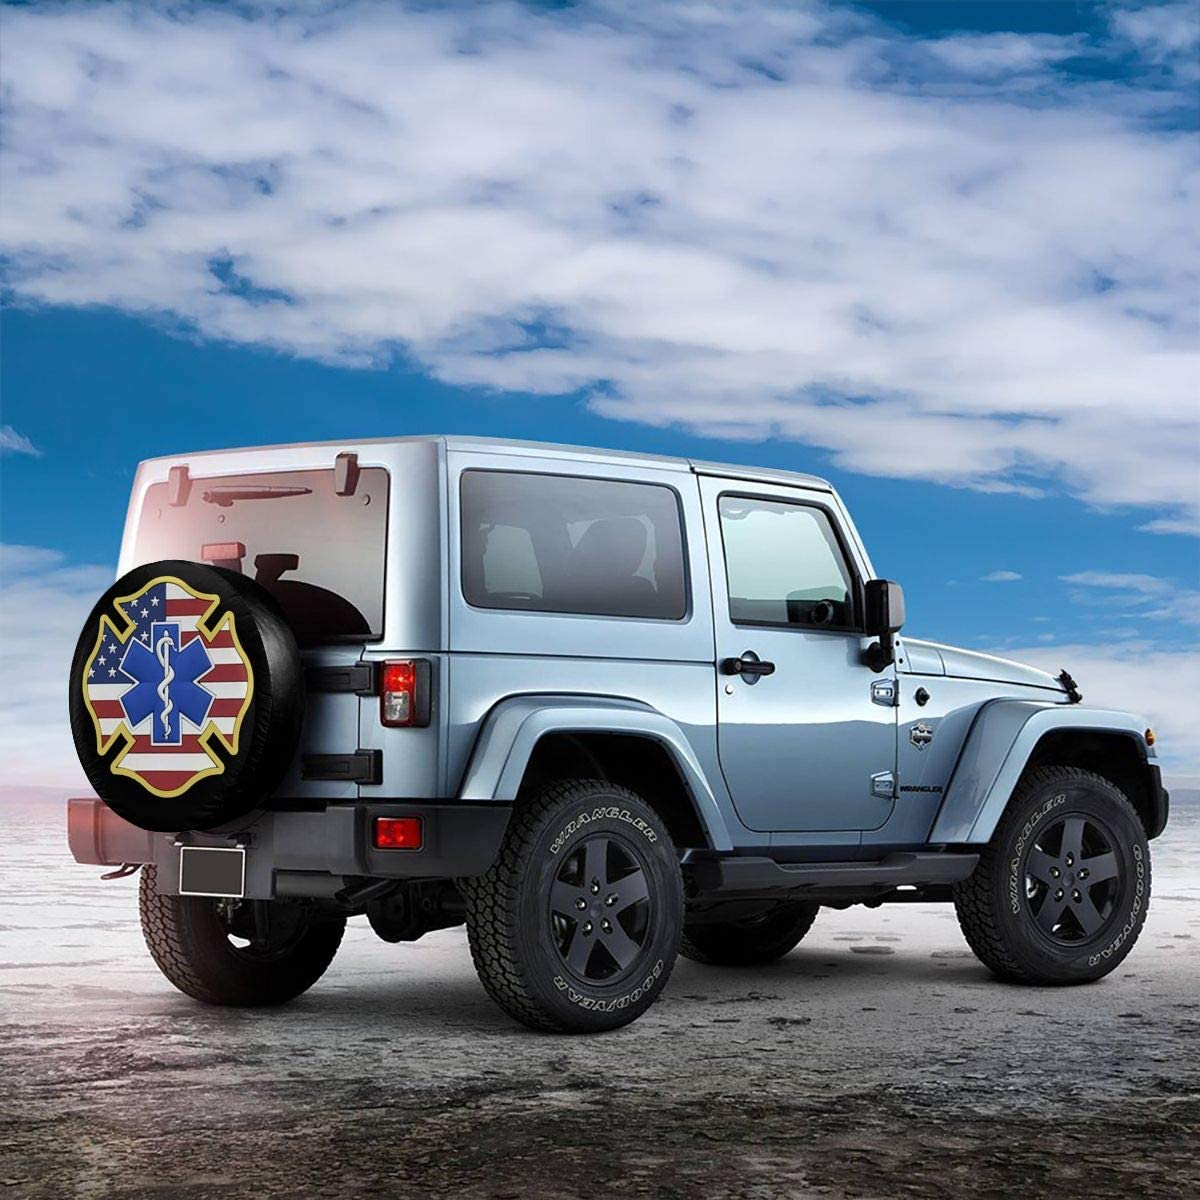 JINGUIluntai EMS EMT Fire Fighter USA Flag Tire Cover Spare Wheel Tire Cover Wheel Covers for Car SUV